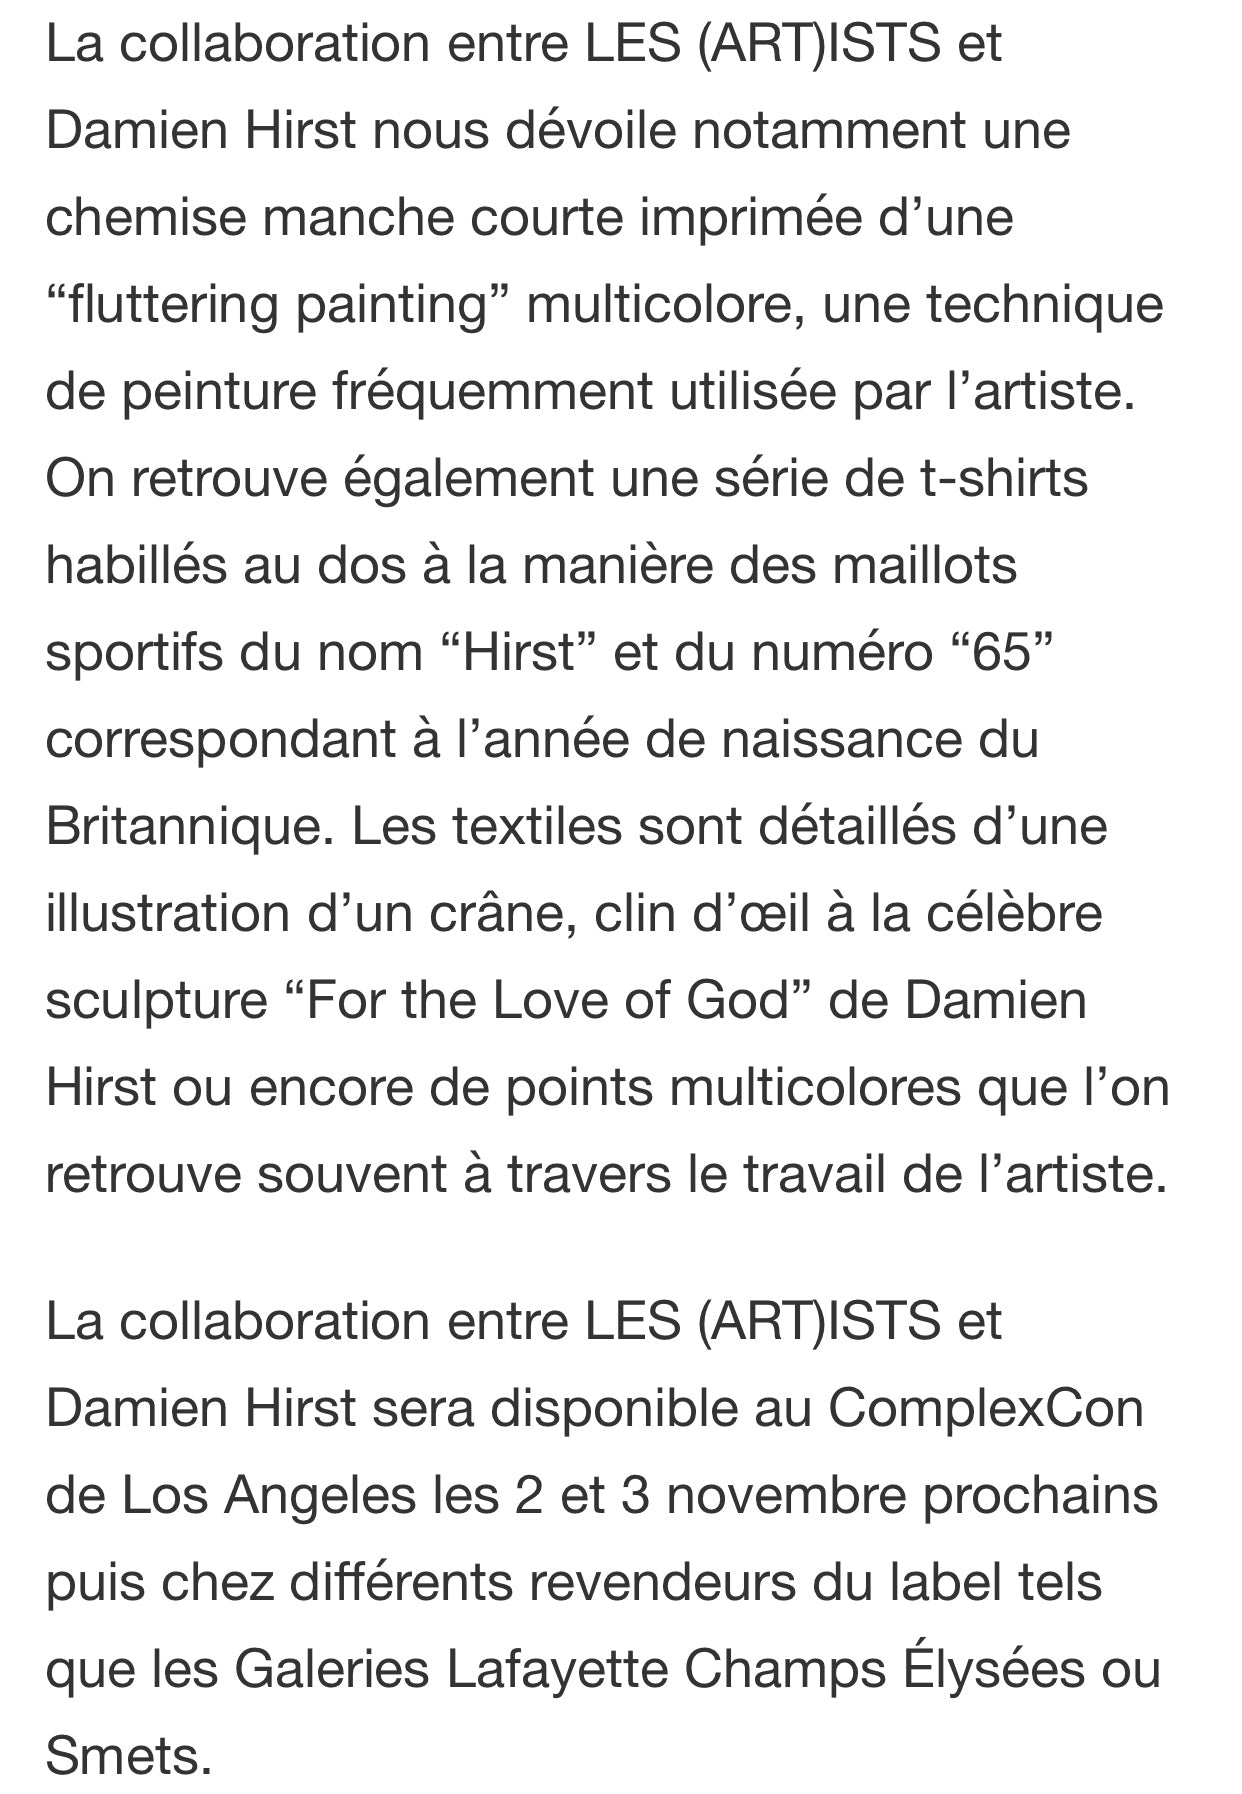 LES (ART)ISTS X DAMIEN HIRST - HYPEBEAST FRANCE